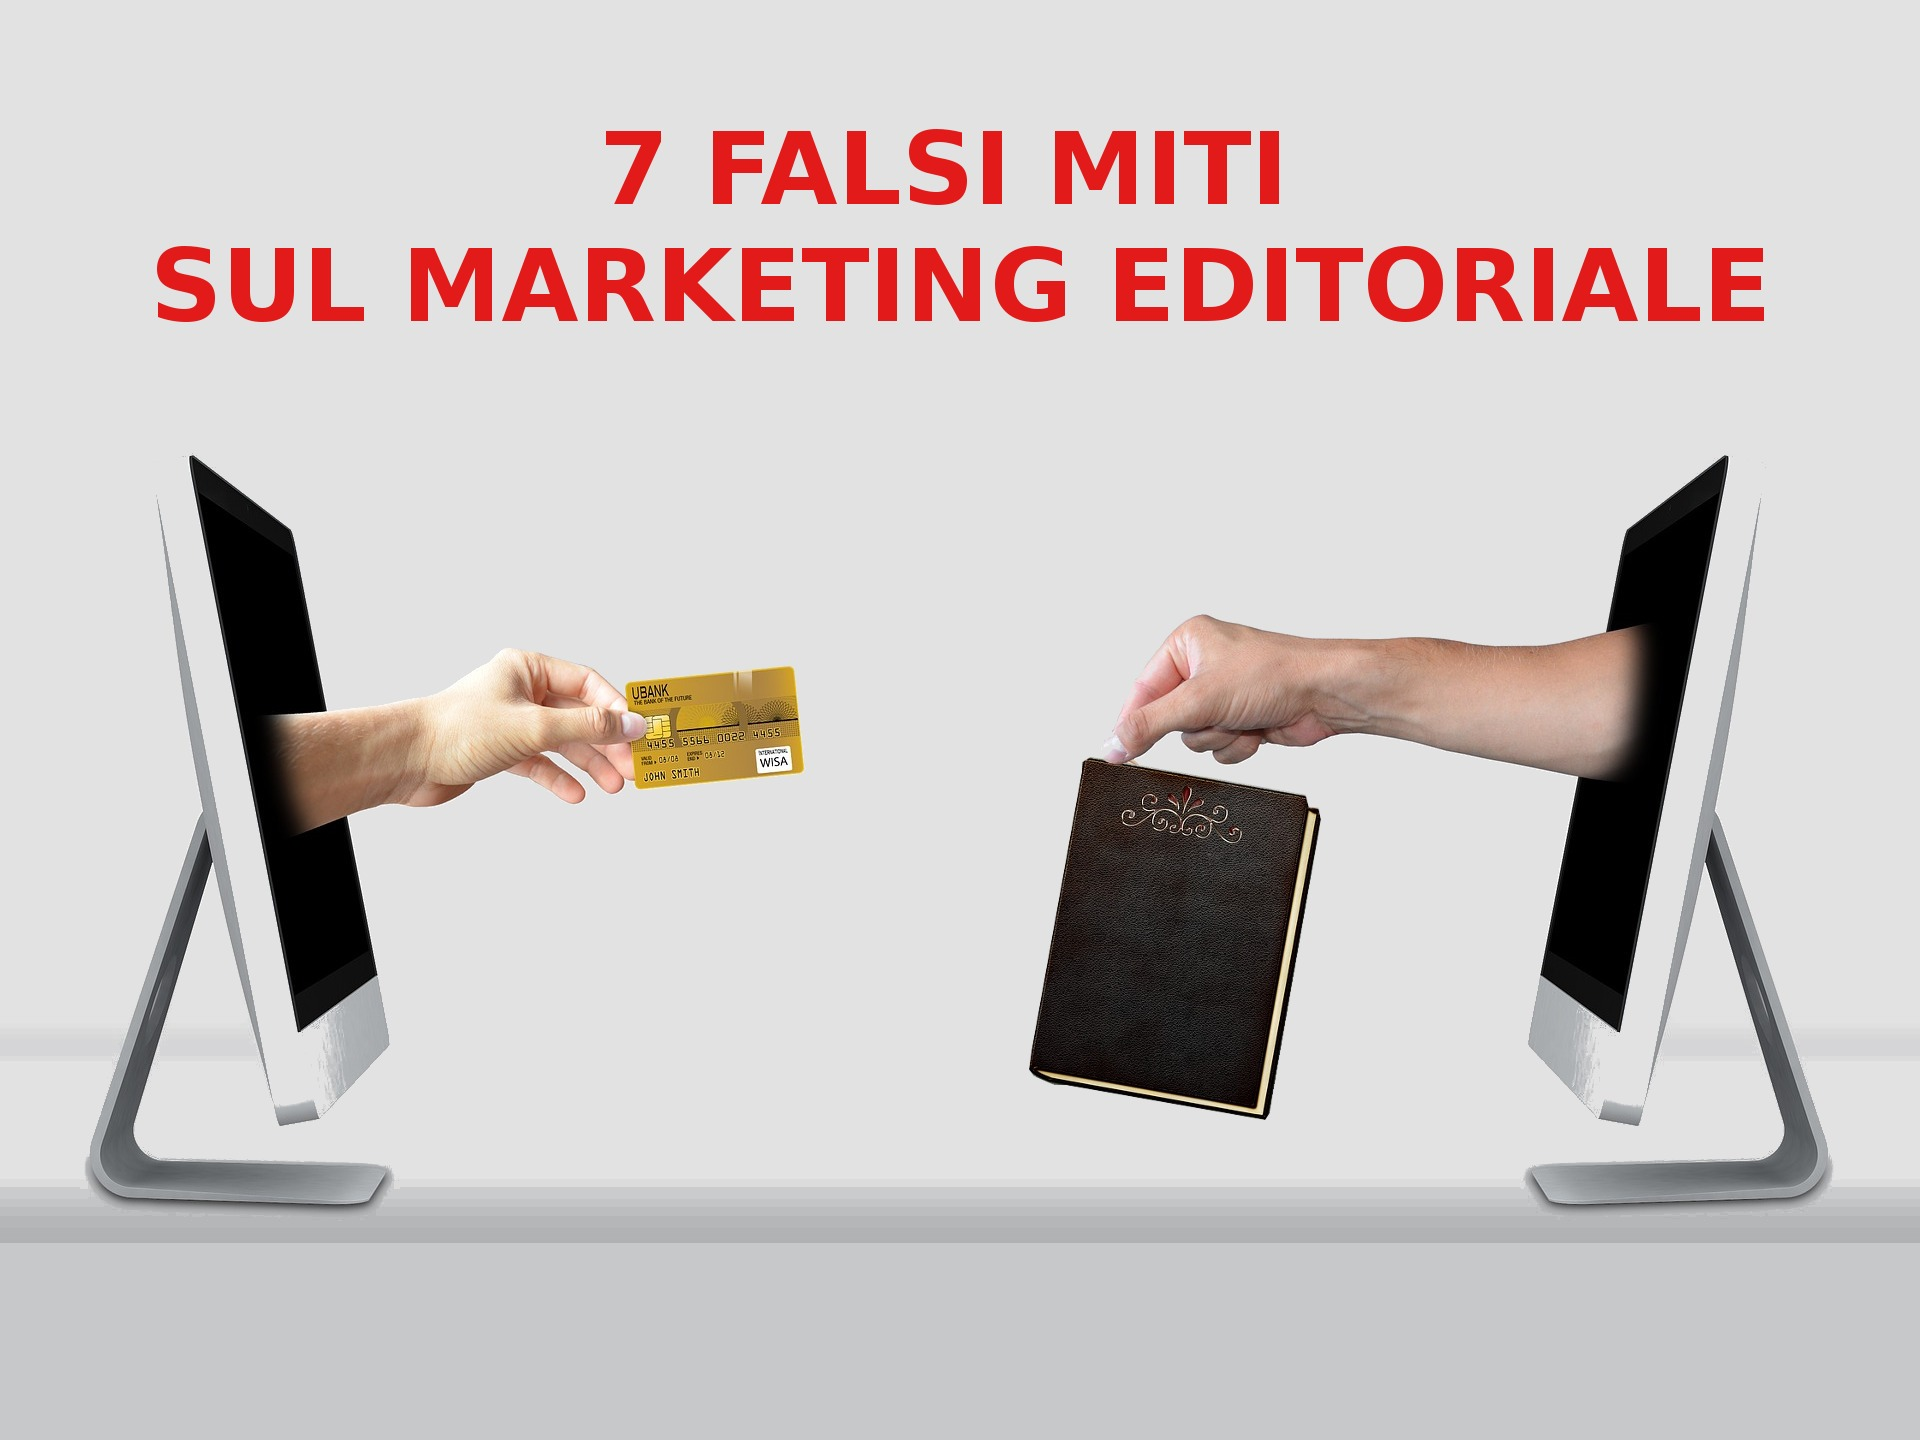 7 falsi miti intorno al marketing editoriale